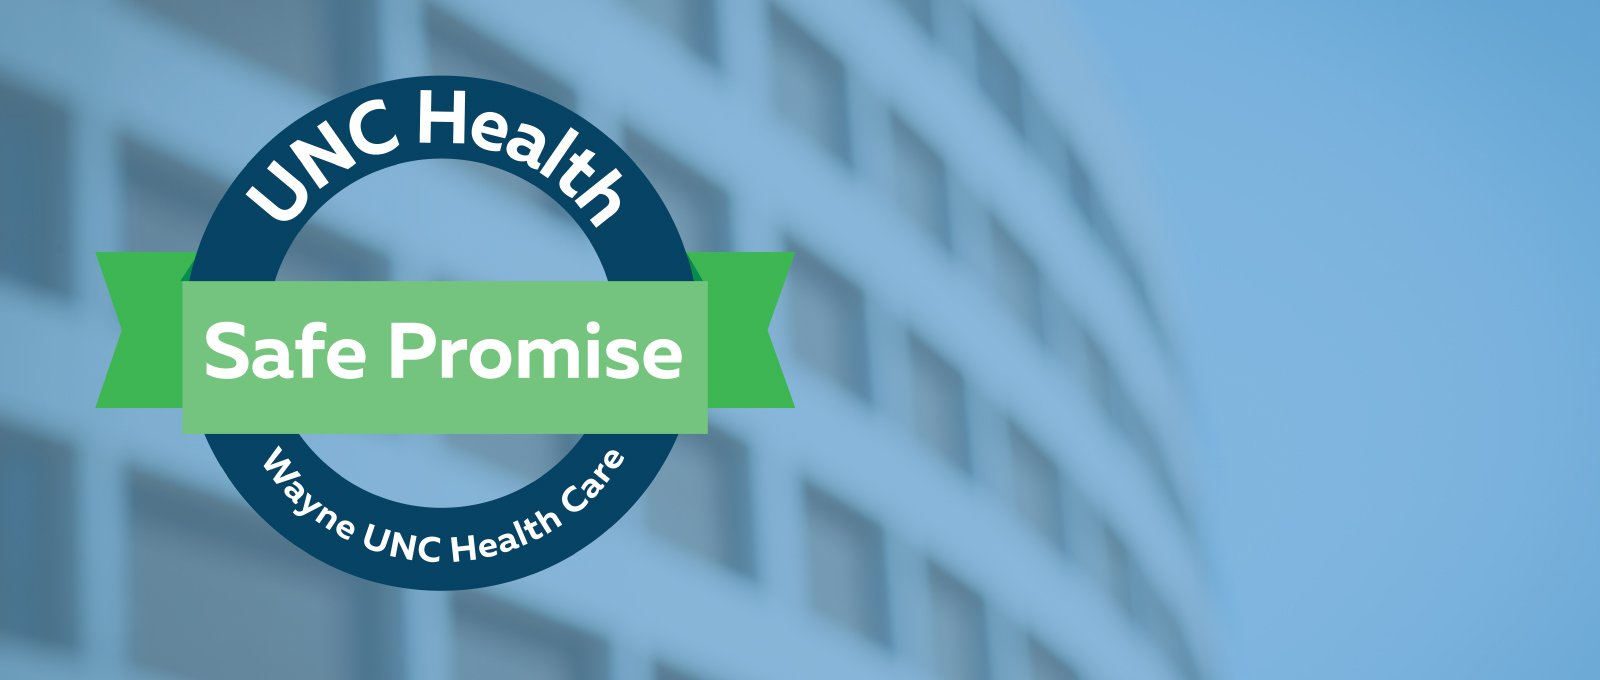 UNC Safe Promise Banner image